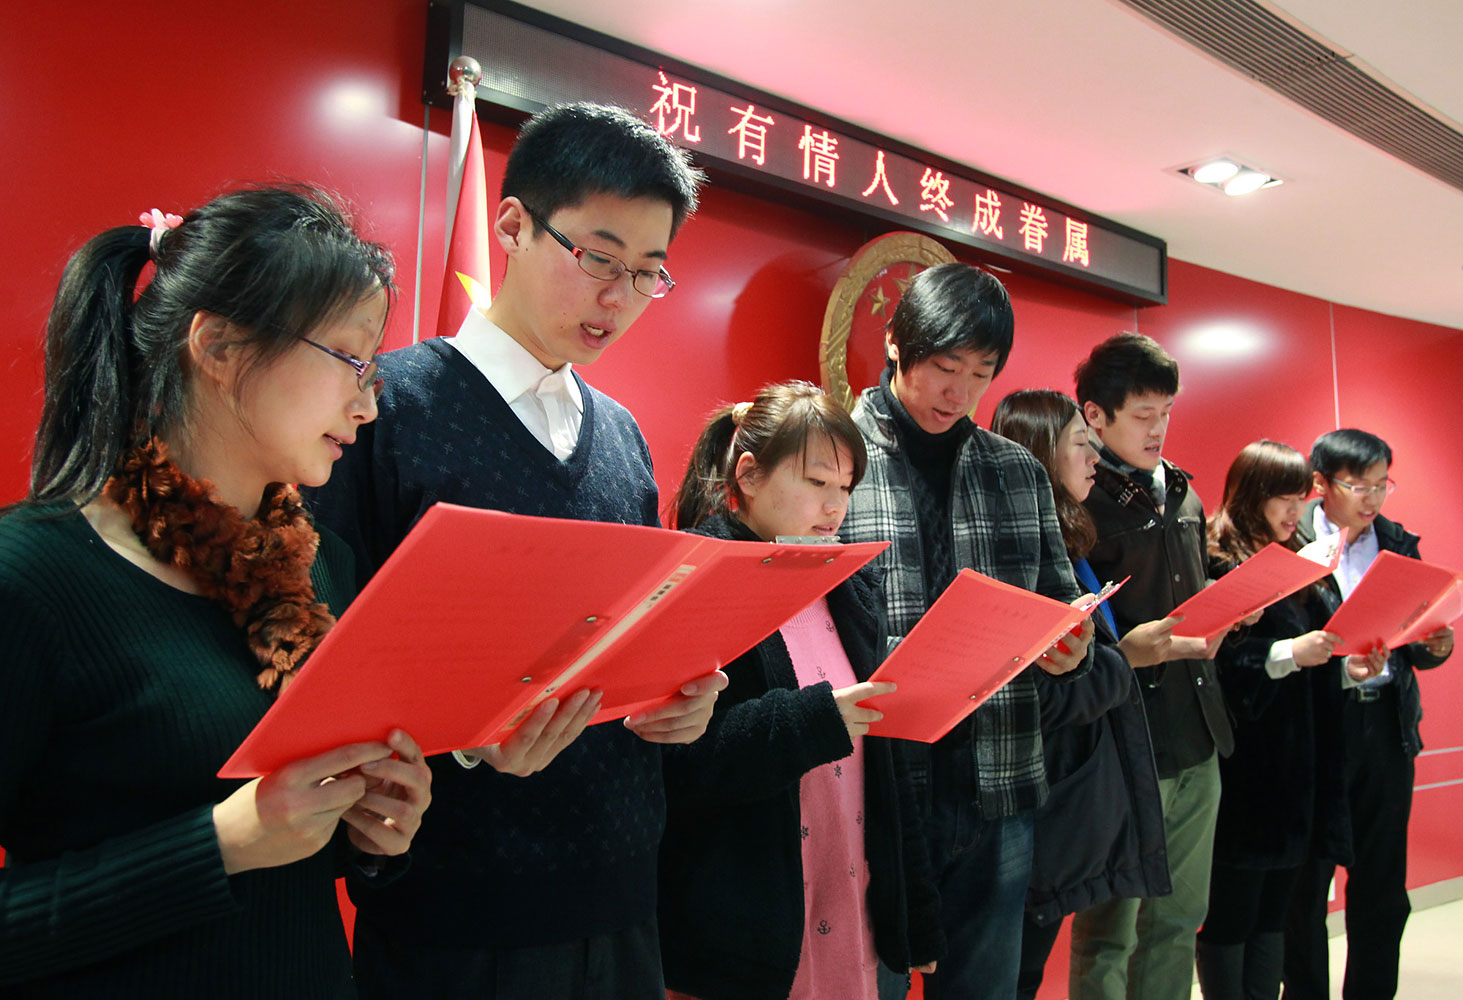 image: Couples read marriage vows in Shanghai.